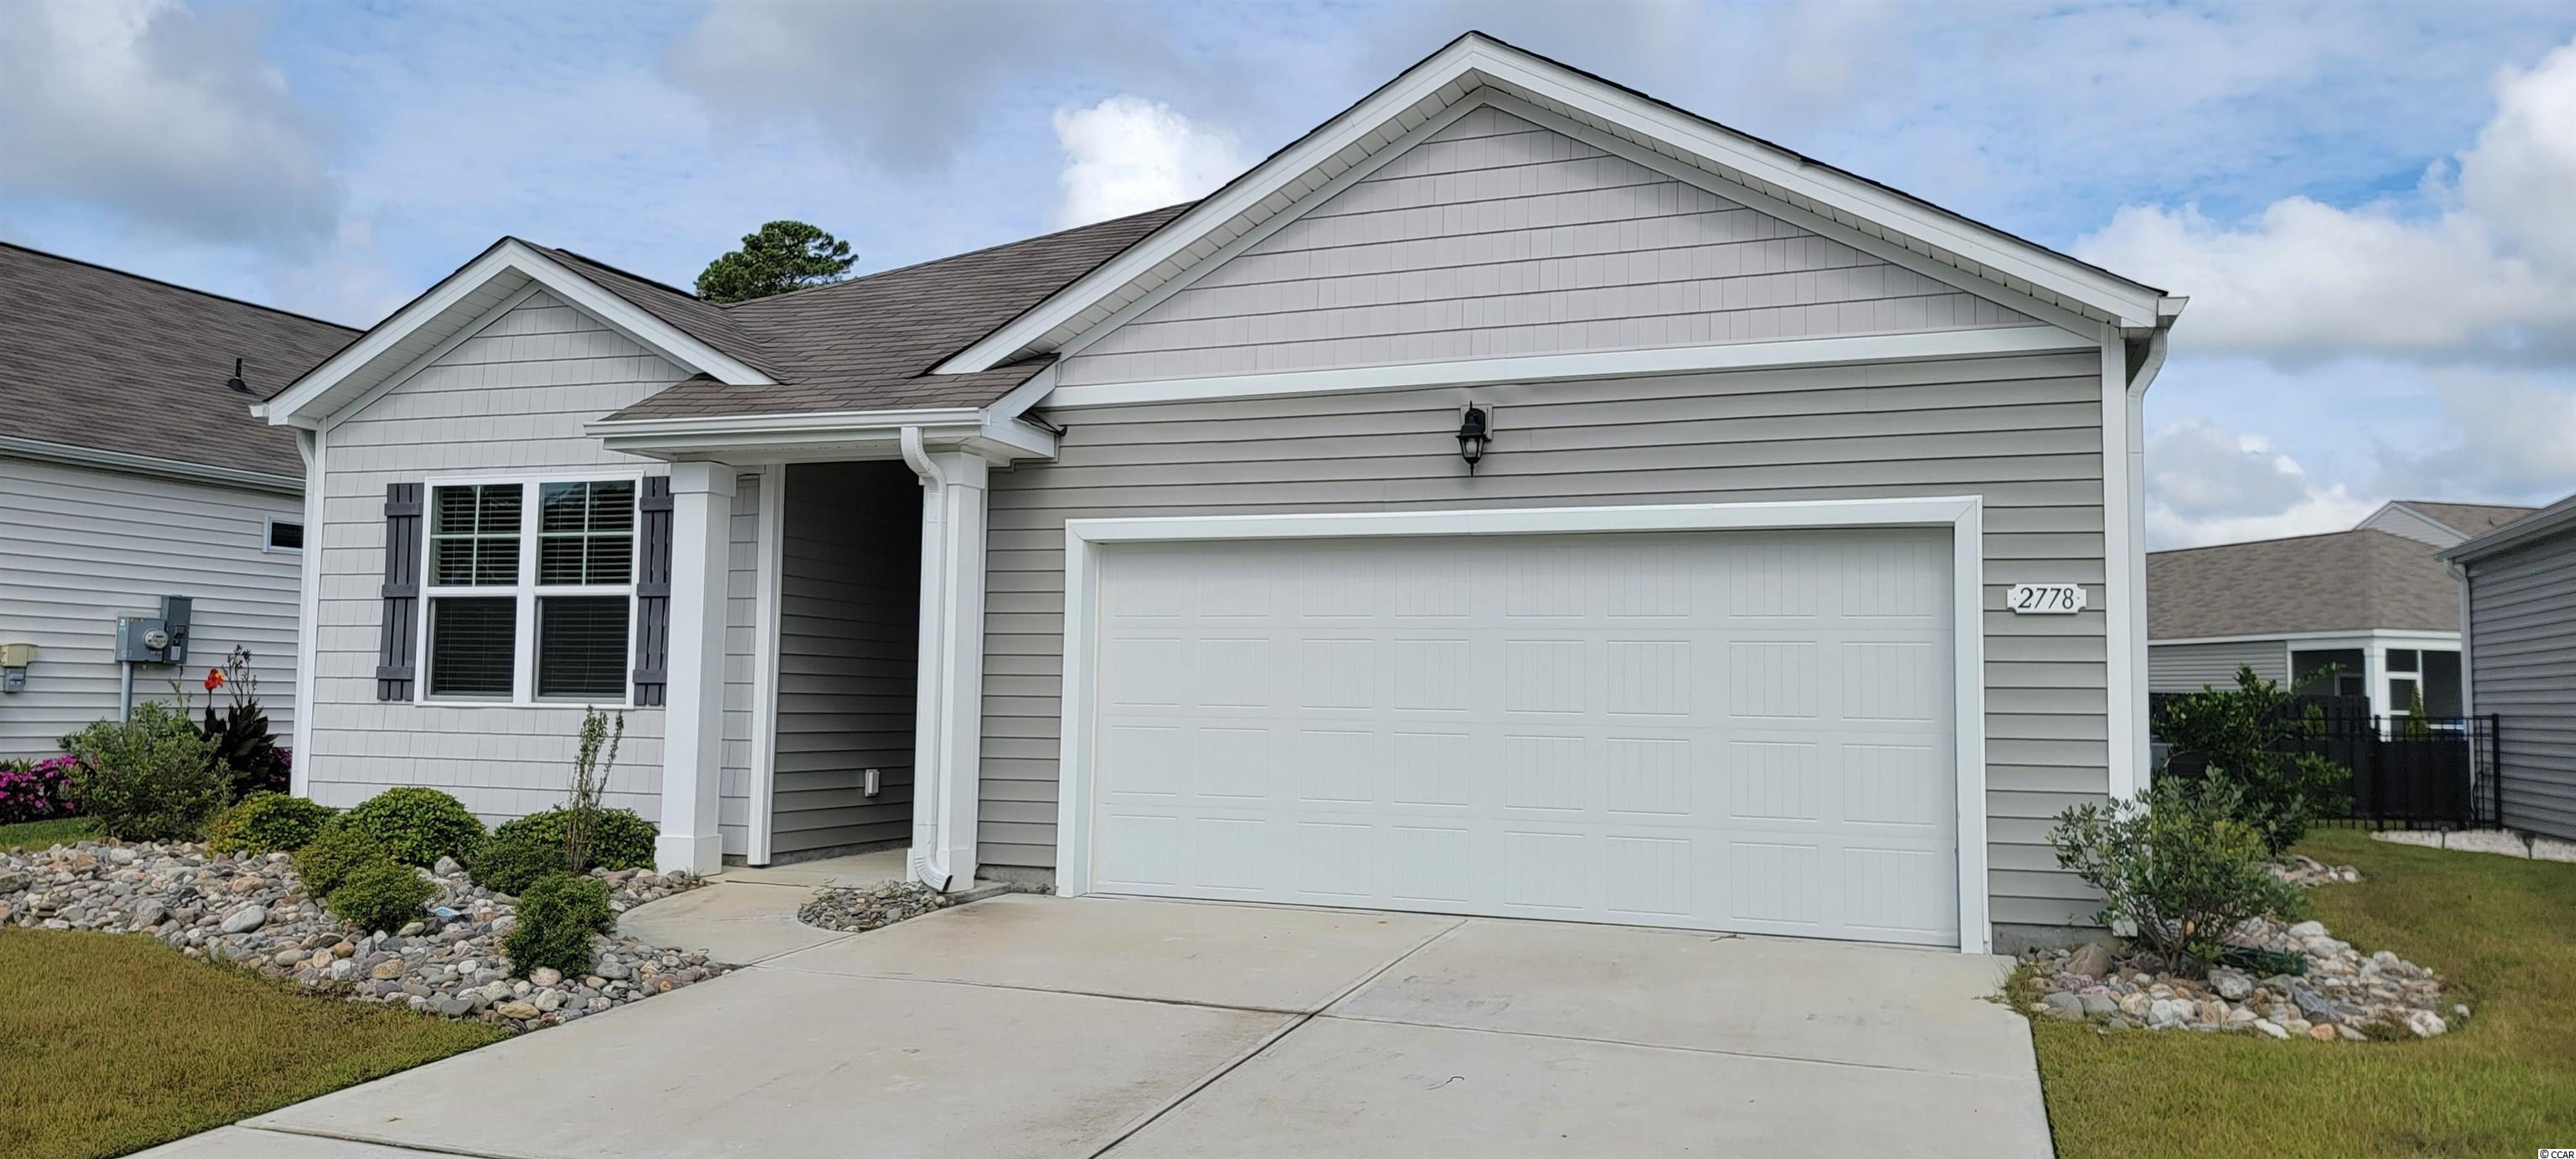 """This """"SMART HOME"""" is connected! Lock or unlock your doors, control the temperature of your home and see who is ringing your doorbell, from your smart phone! Kitchen features stainless appliances (including refrigerator) and 36"""" cabinets with pendant lights over the granite counter-height island, all overlooking the spacious living room and dining room- great for entertaining! Low maintenance solid surface flooring (resilient hardwood-look vinyl) throughout the living area, bathrooms and laundry room. From the dining room, sliding glass doors take you to a 12 x 8 ft. covered porch. Owner's suite offers a large walk-in closet and bath with 5 ft. shower, double vanity and sinks. Washer, dryer and garage door opener also included! We are the price-leader for single family homes in Market Common! Our home owners will enjoy a gracious pool and hot tub, air conditioned pickle ball court/meeting space, walking trails and a short golf cart ride to the beach. Live like you're on vacation! (Home and community information, including pricing, included features, terms, availability and amenities, are subject to change prior to sale at any time without notice or obligation. Square footages are approximate. Pictures, photographs, colors, features, and sizes are for illustration purposes only and will vary from the homes as built."""